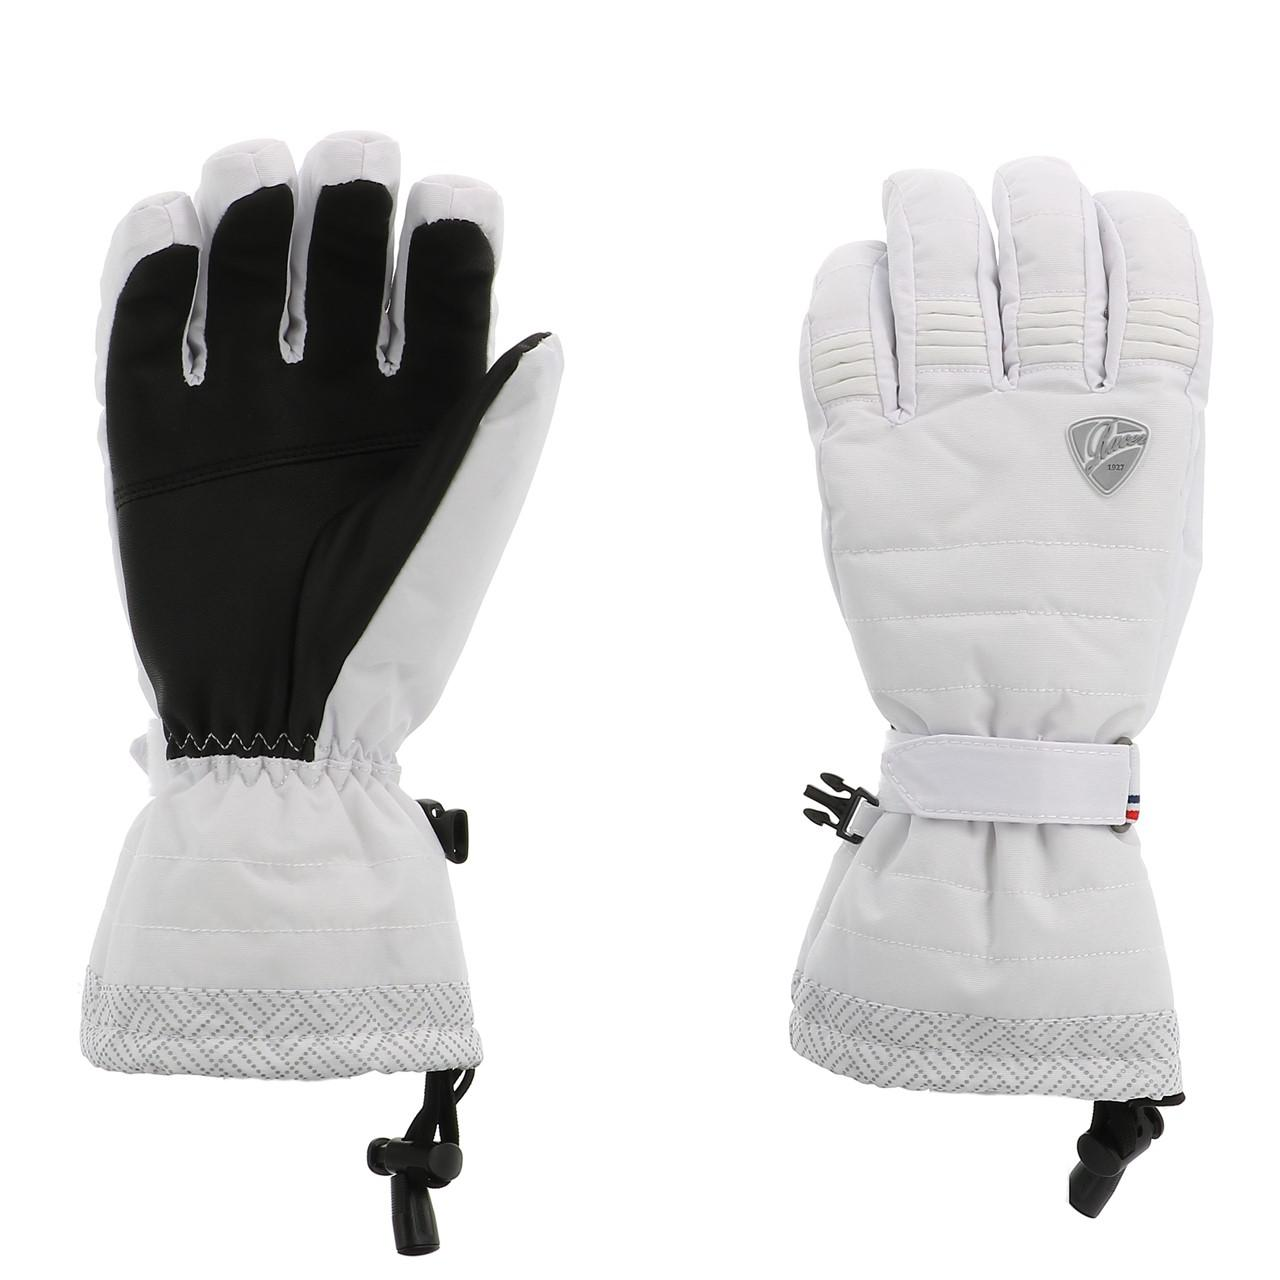 Ski-Gloves-Racer-Aloma-3-White-Gloves-Ski-L-White-15709-New thumbnail 2